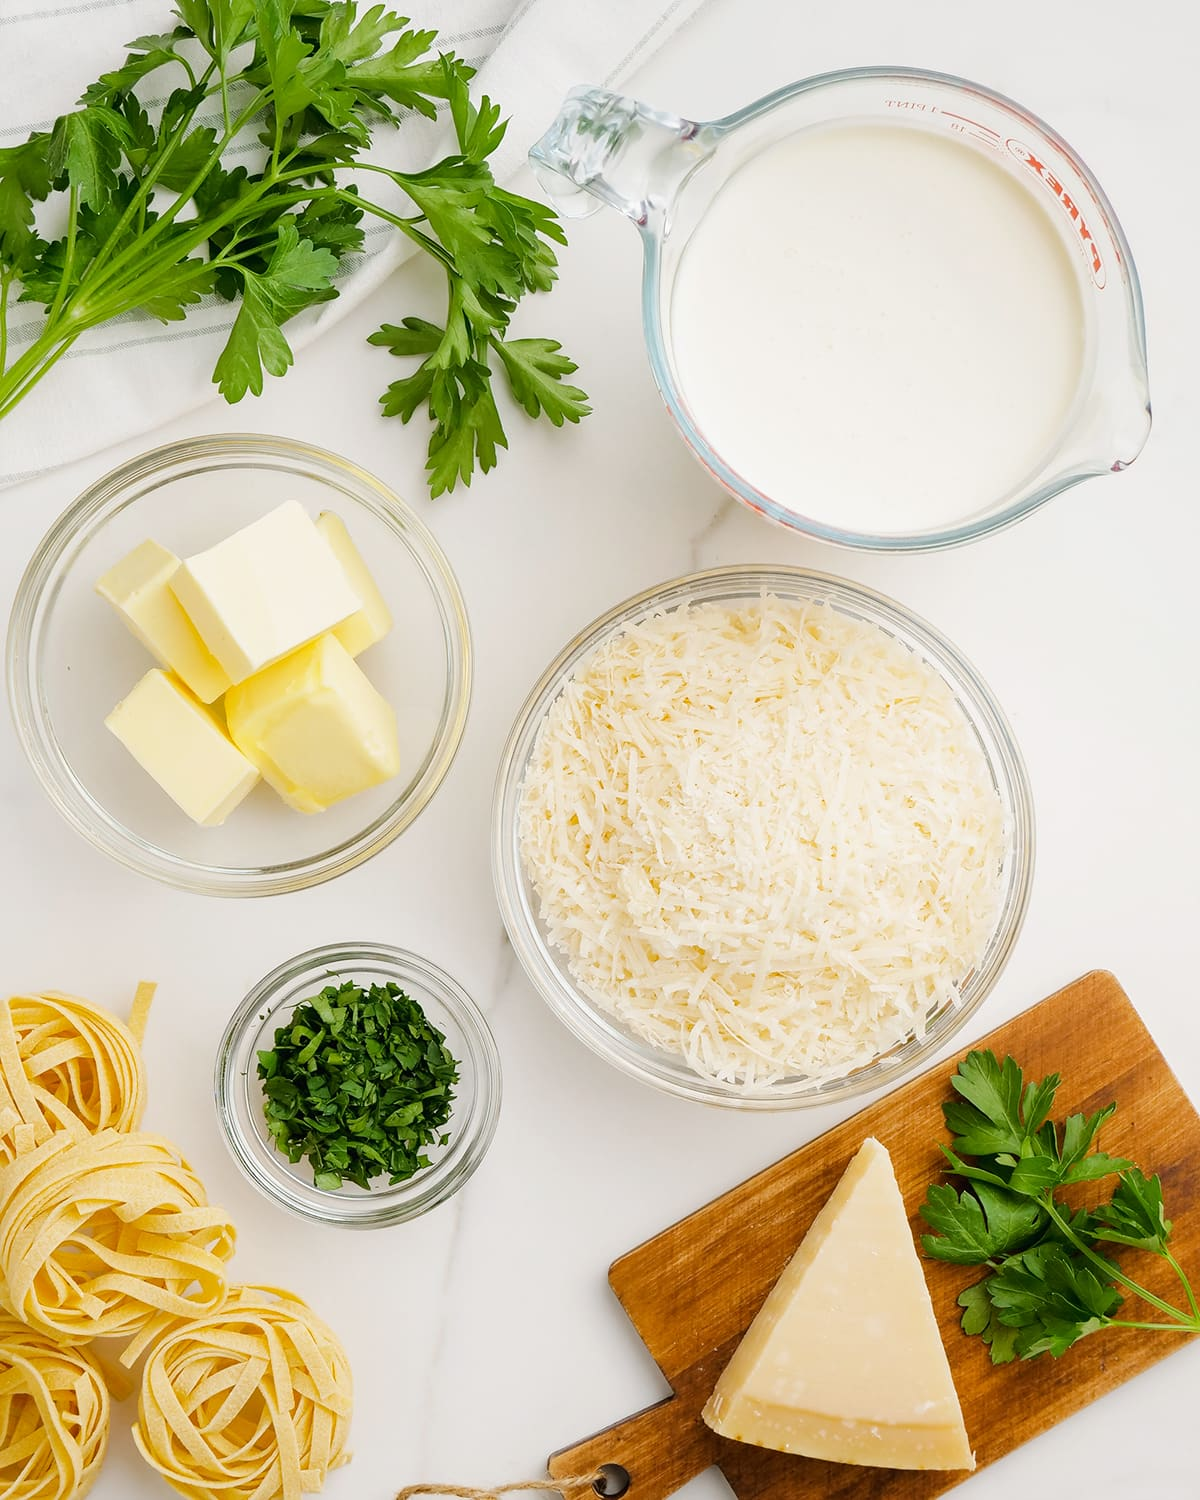 The ingredients needed to make homemade alfredo sauce.